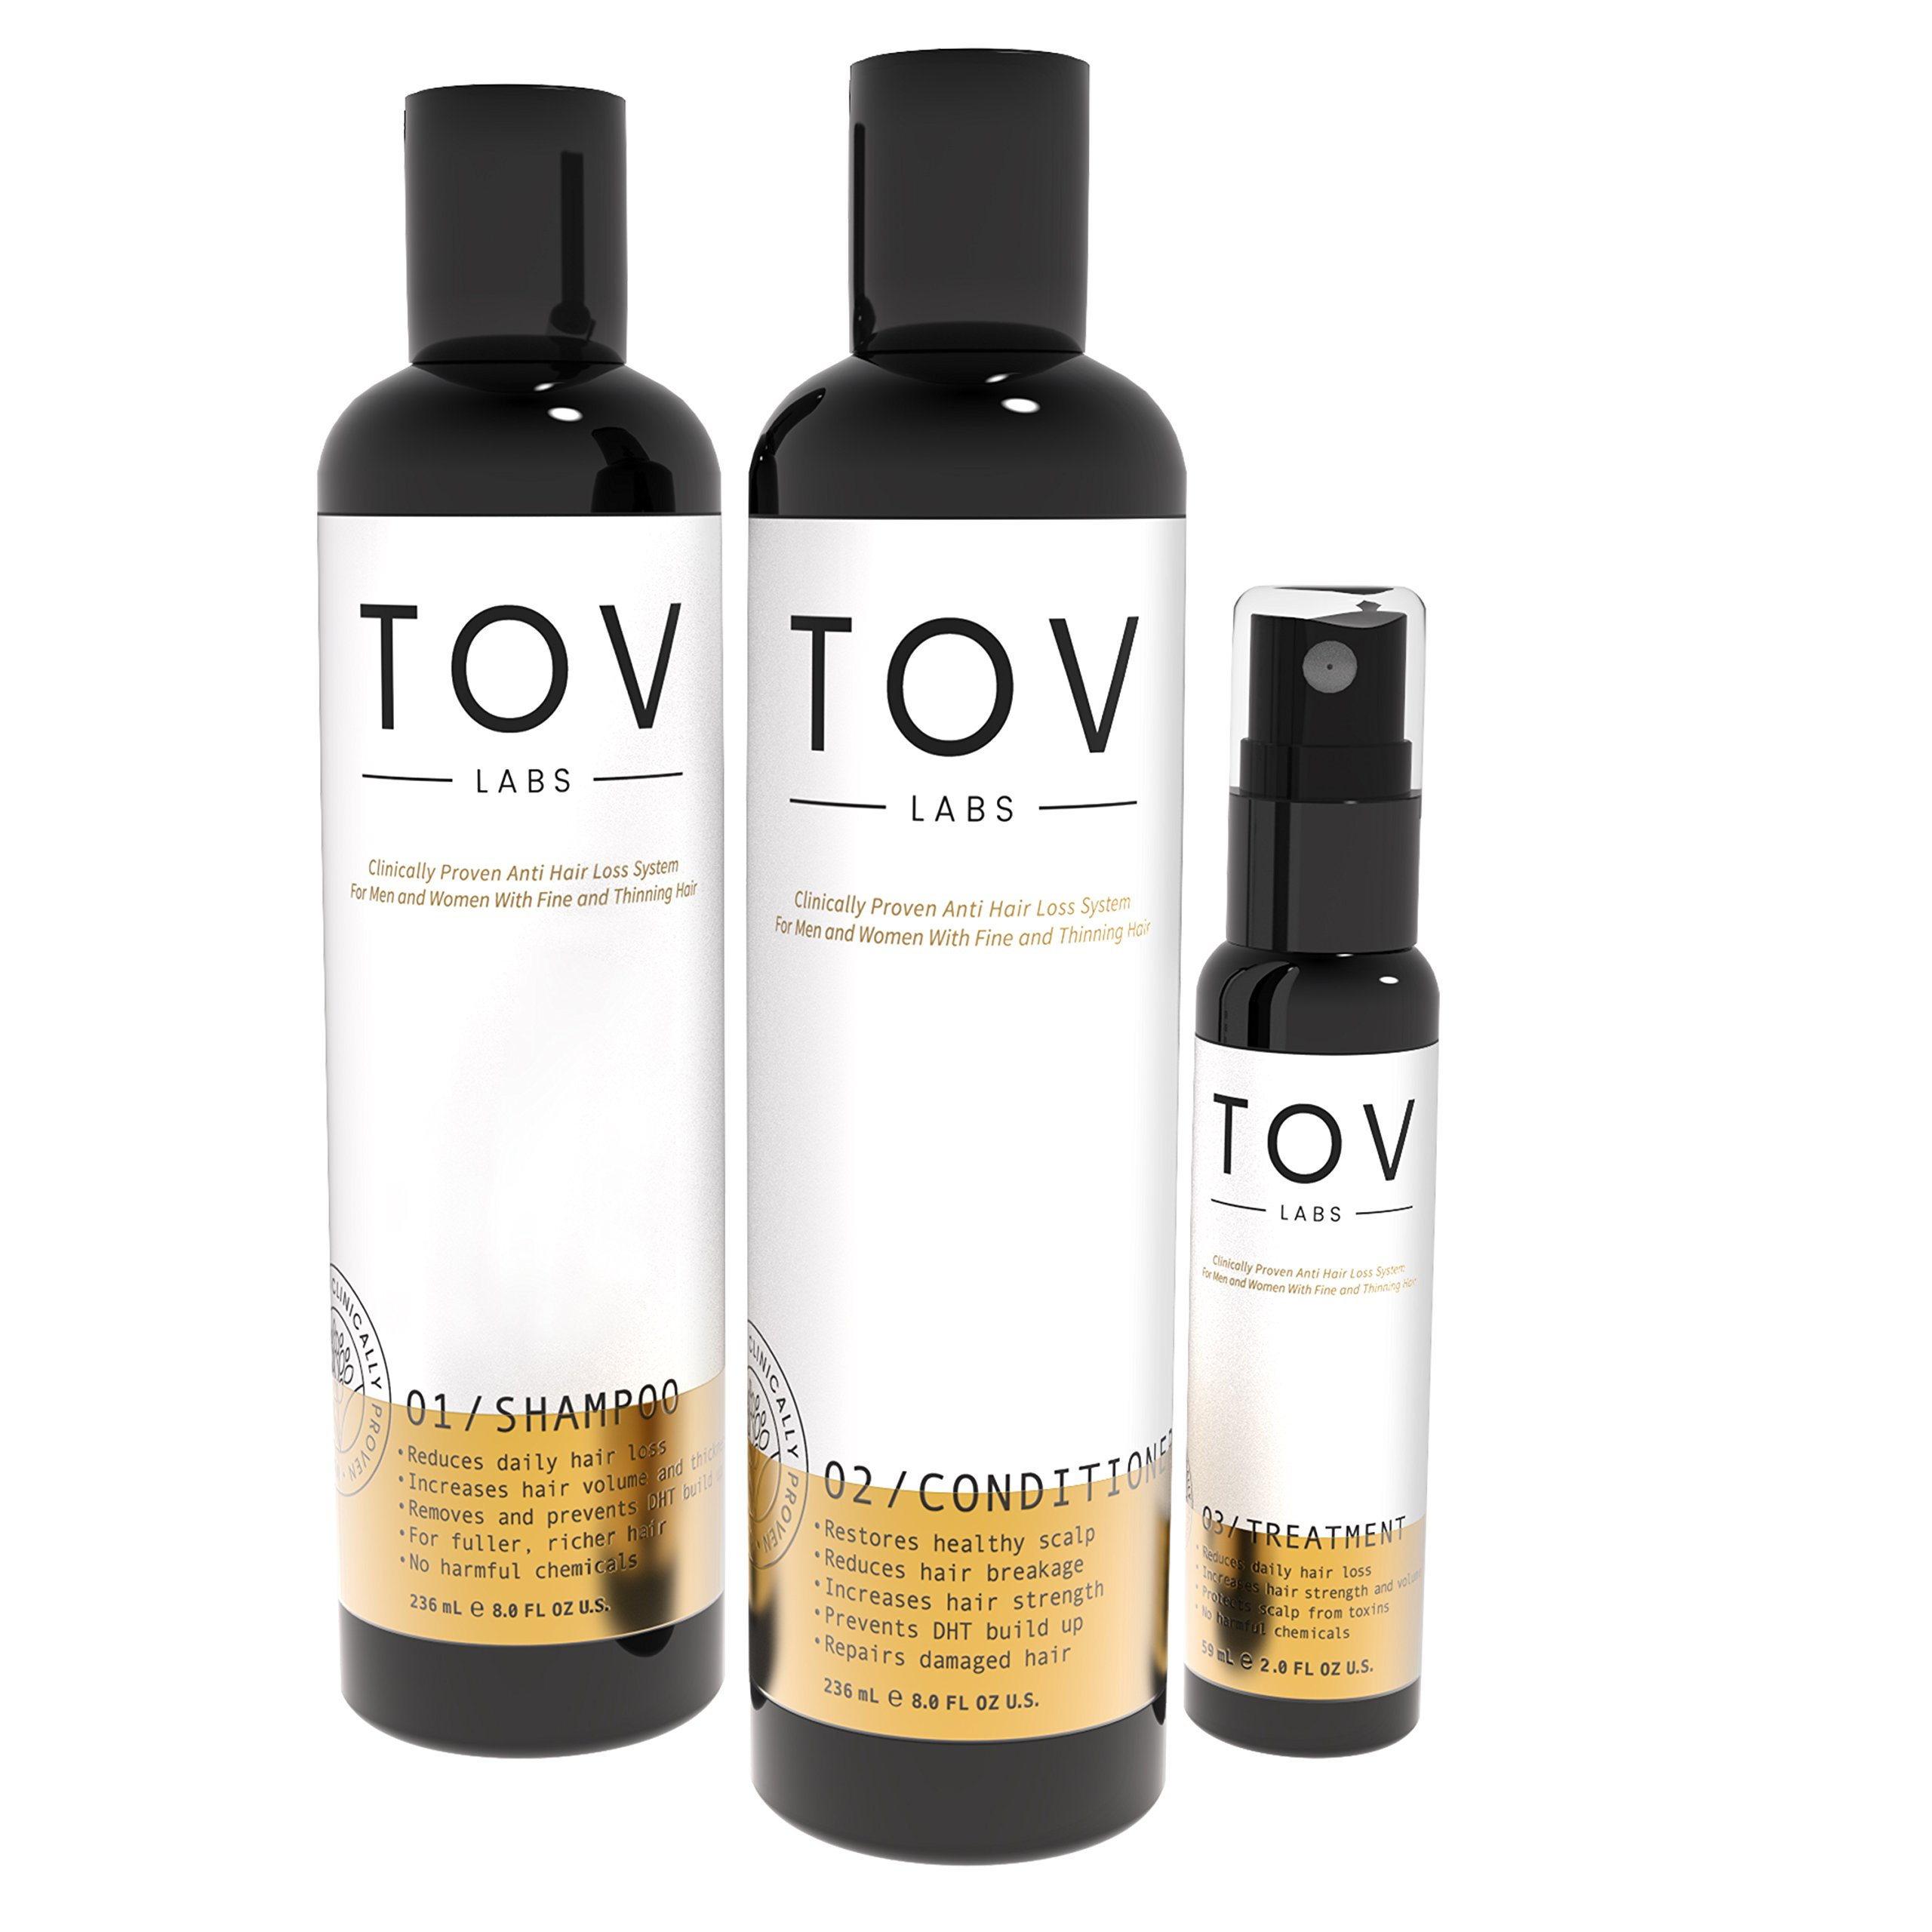 TOV LABS Clinically Proven, Naturally Based, Anti Hair Loss System for Men and Women with Fine and Thinning Hair. (Shampoo, Conditioner, Treatment)